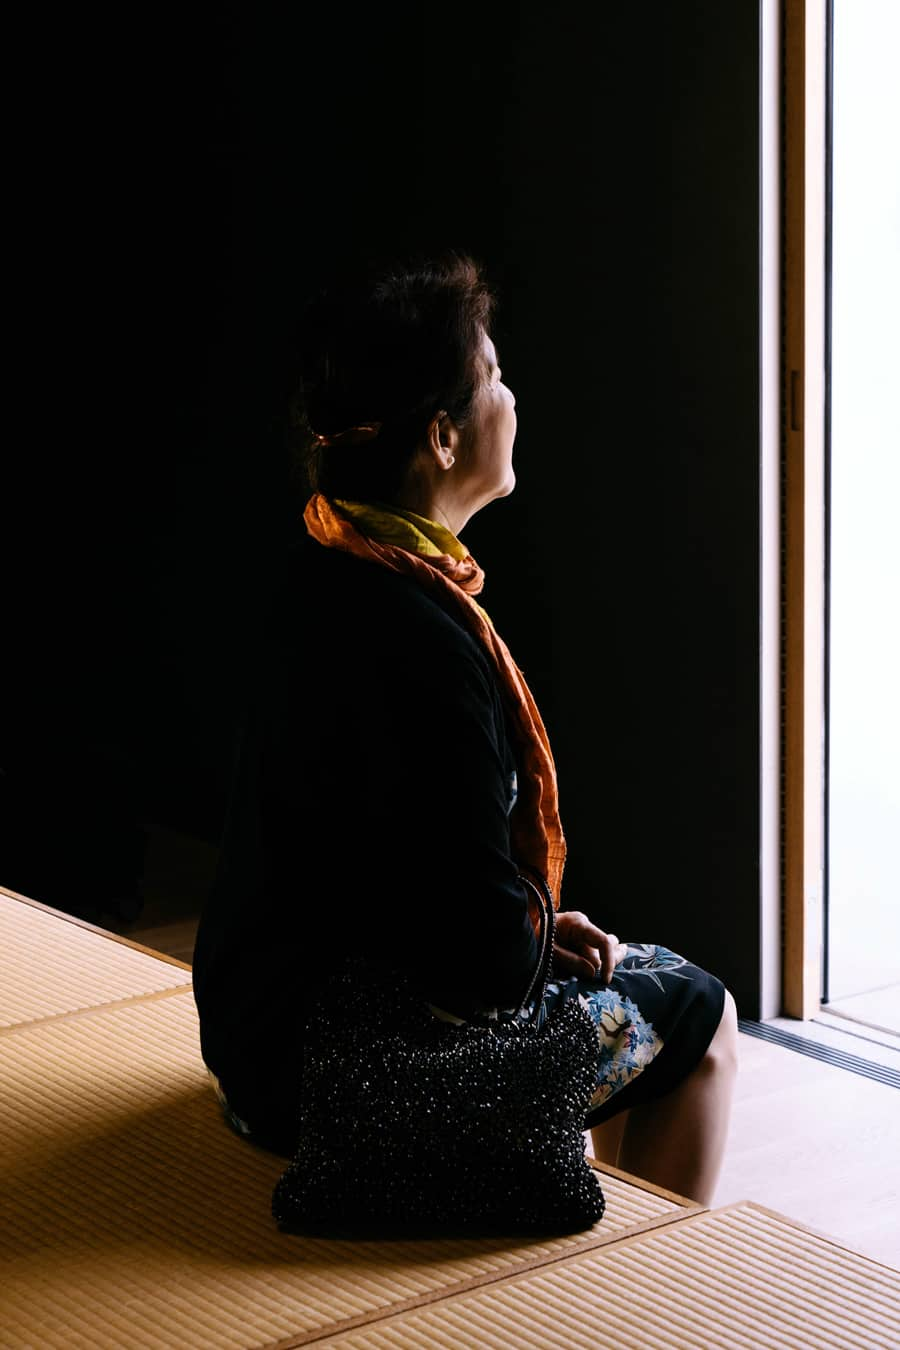 Seated woman serenely looks into the light of an open doorway